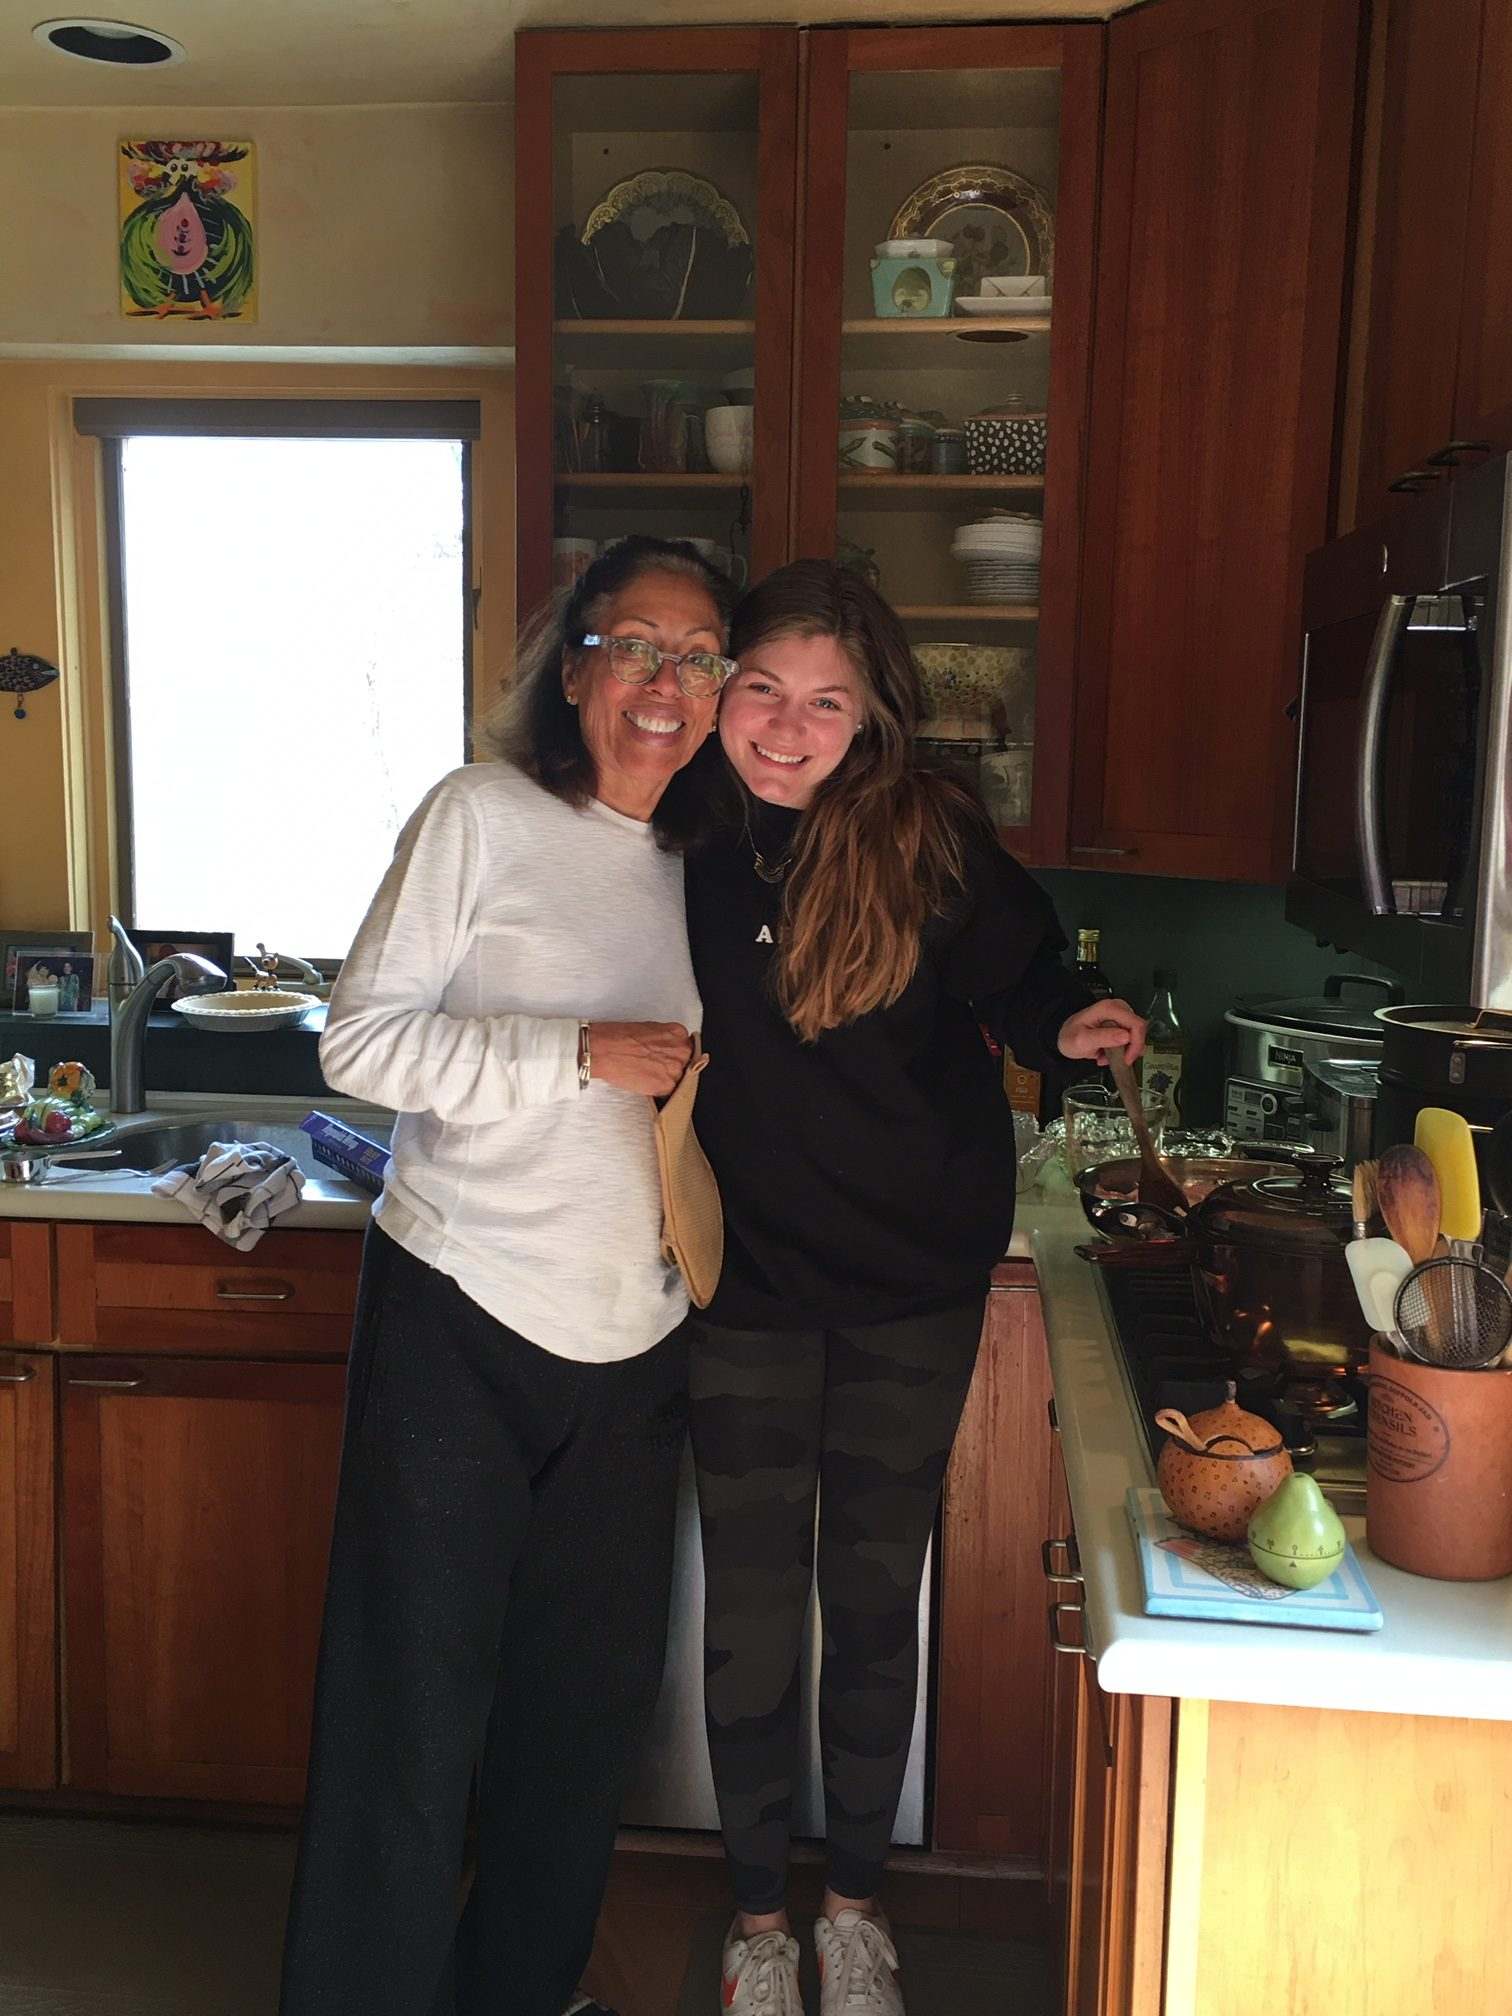 Joy and grand-daughter, Gefen cooking quiche.